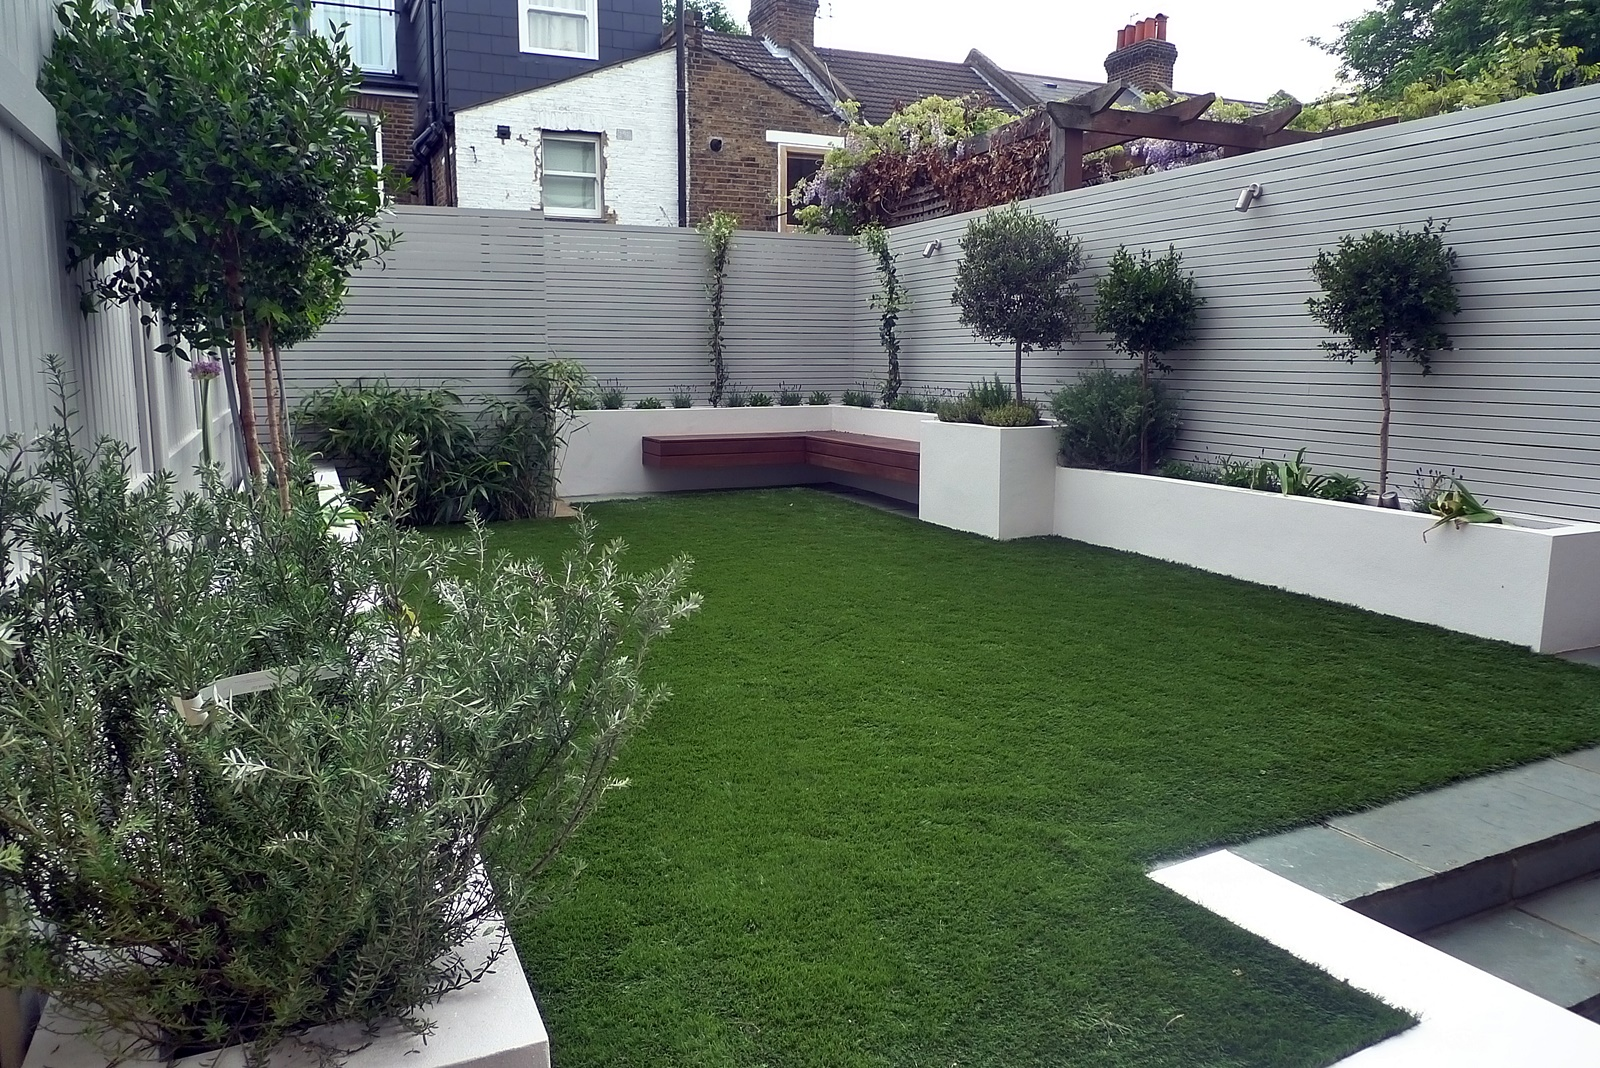 London garden blog london garden blog gardens from for Garden design ideas 2016